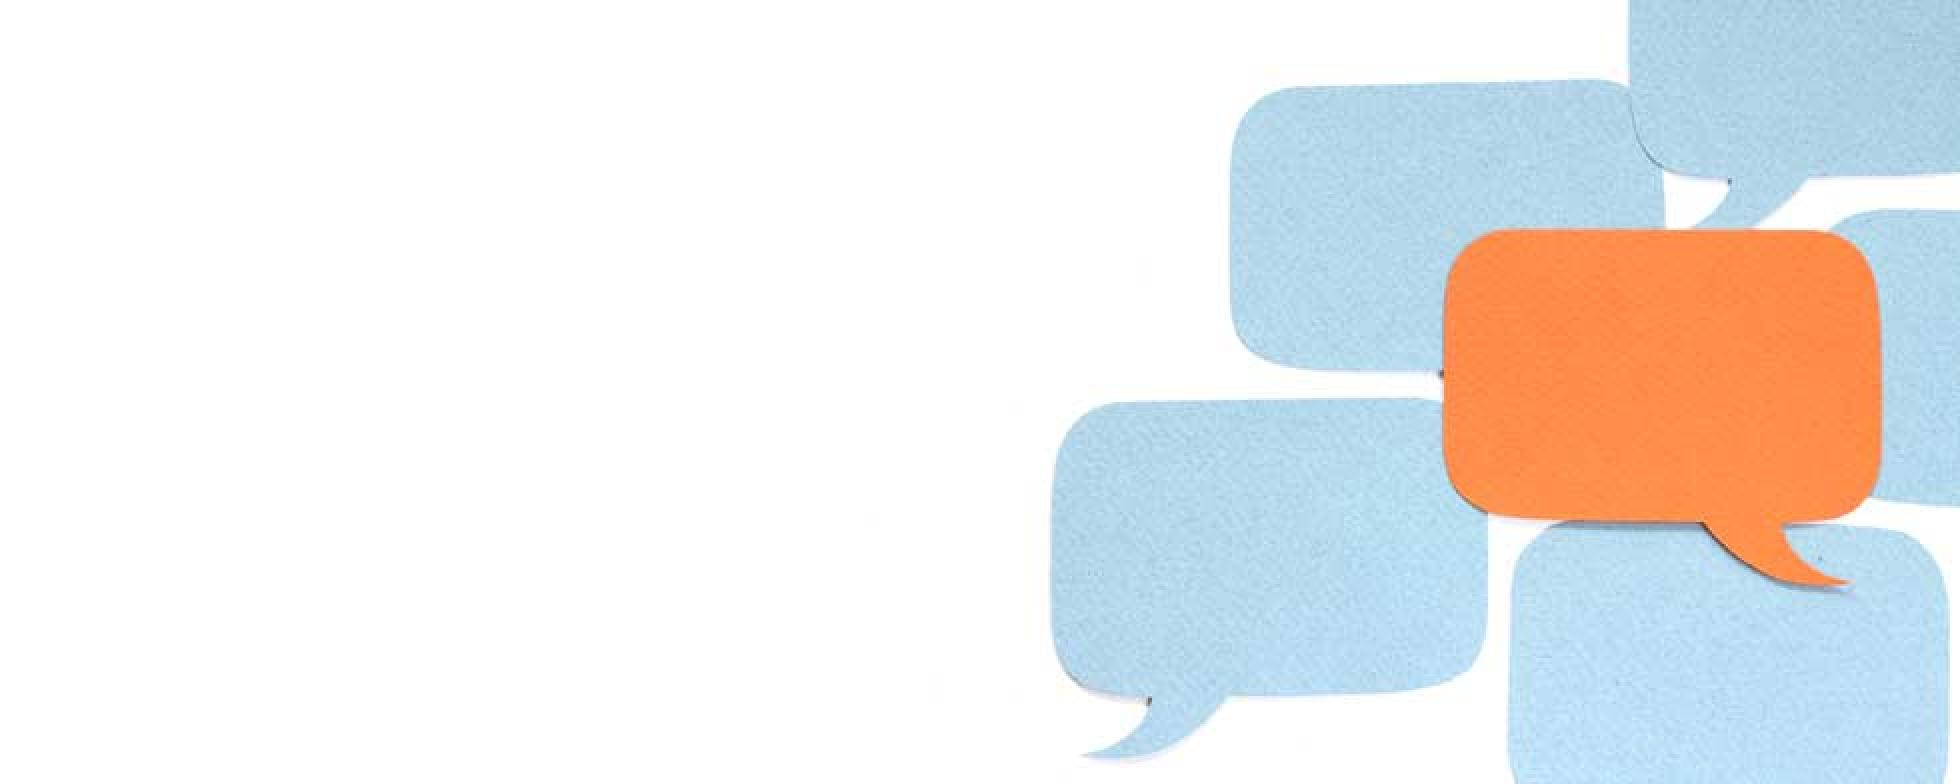 Paper cut-outs of word bubbles.